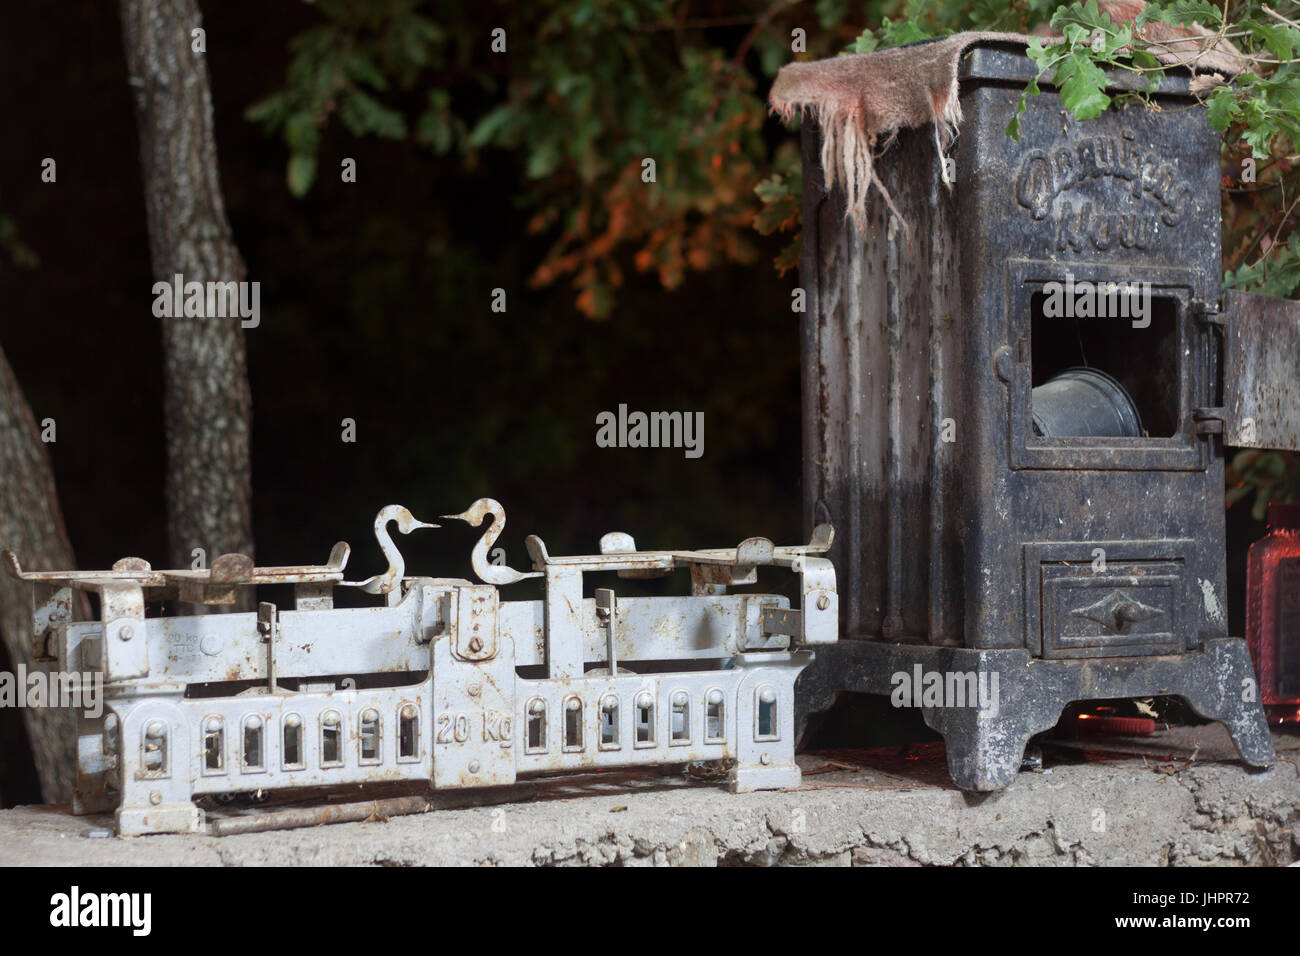 antique stuff and things - Stock Image